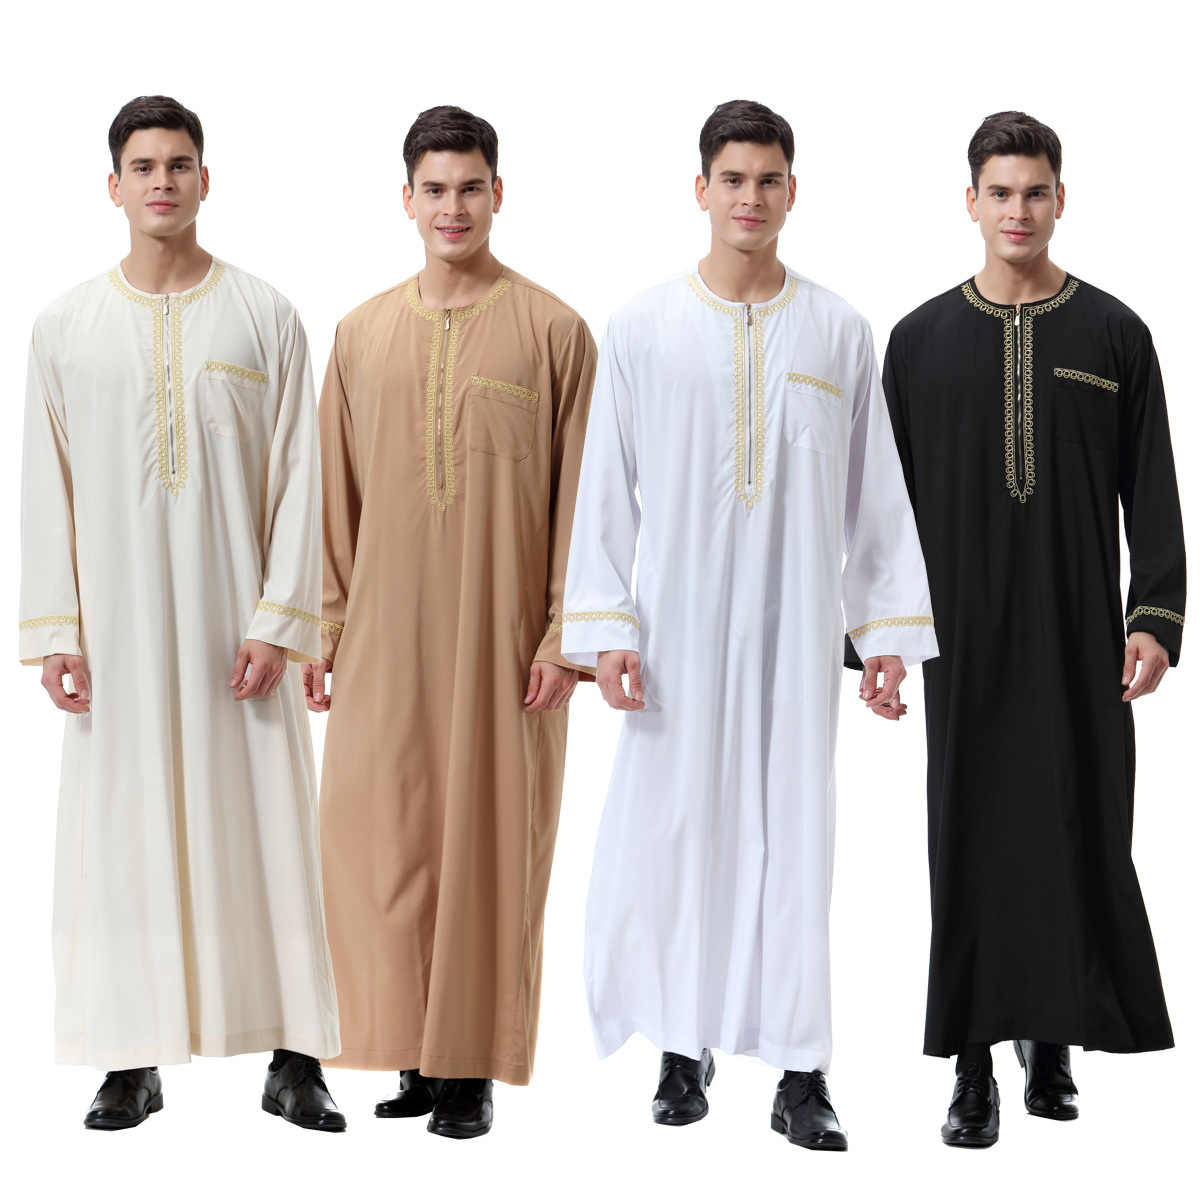 d0a96b7365bf4 Detail Feedback Questions about 2018 Islamic Clothing Men O neck ...